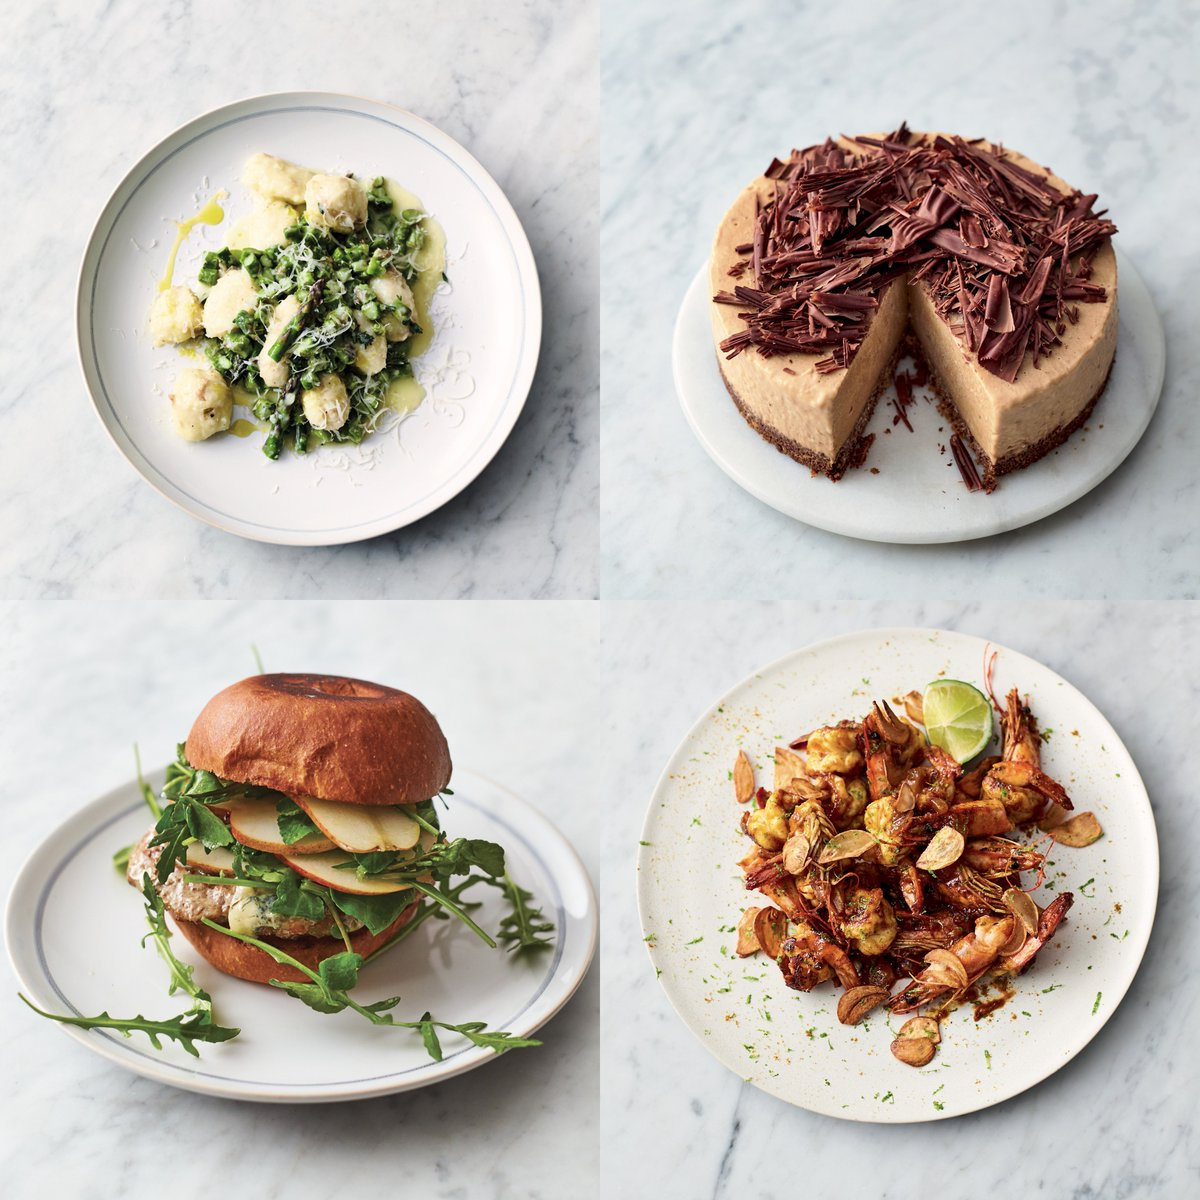 Missed #QuickAndEasyFood on Monday? Not to worry, catch it again on @4seven in 1 HOUR - 7pm! https://t.co/TtEIpa1ml3